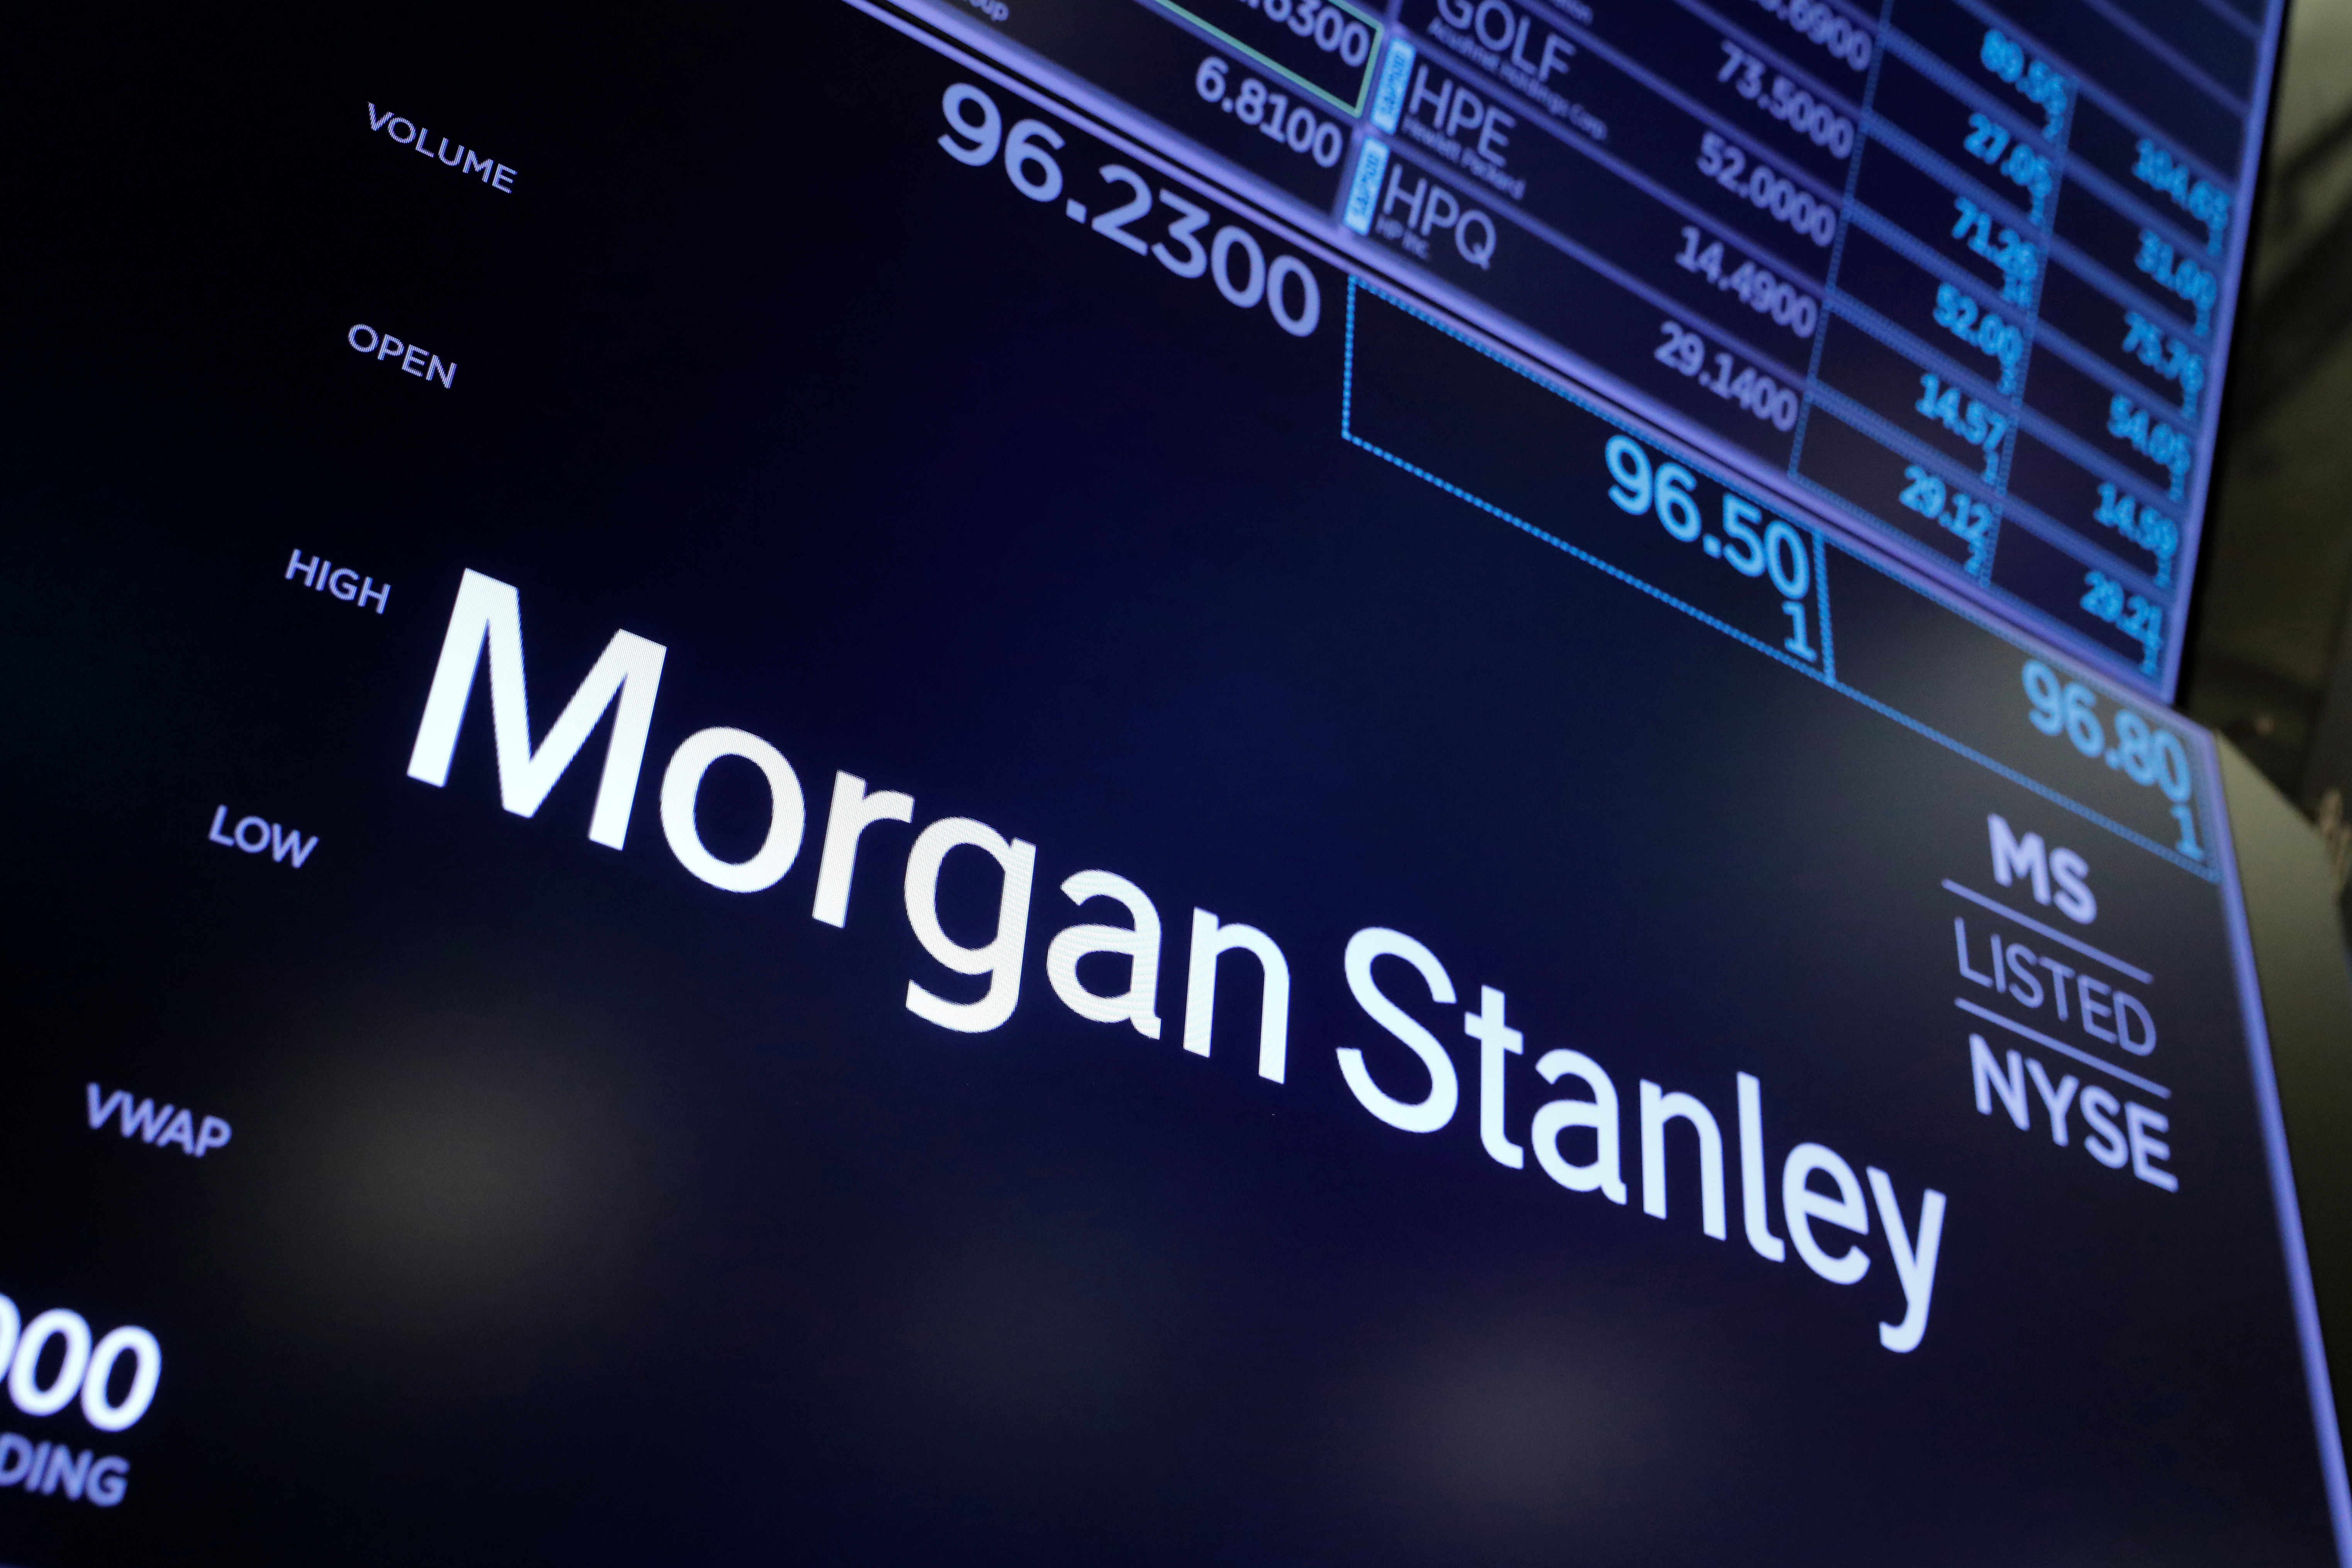 The Morgan Stanley logo is seen on the trading floor at the New York Stock Exchange (NYSE) in Manhattan, New York City, U.S. REUTERS/Andrew Kelly